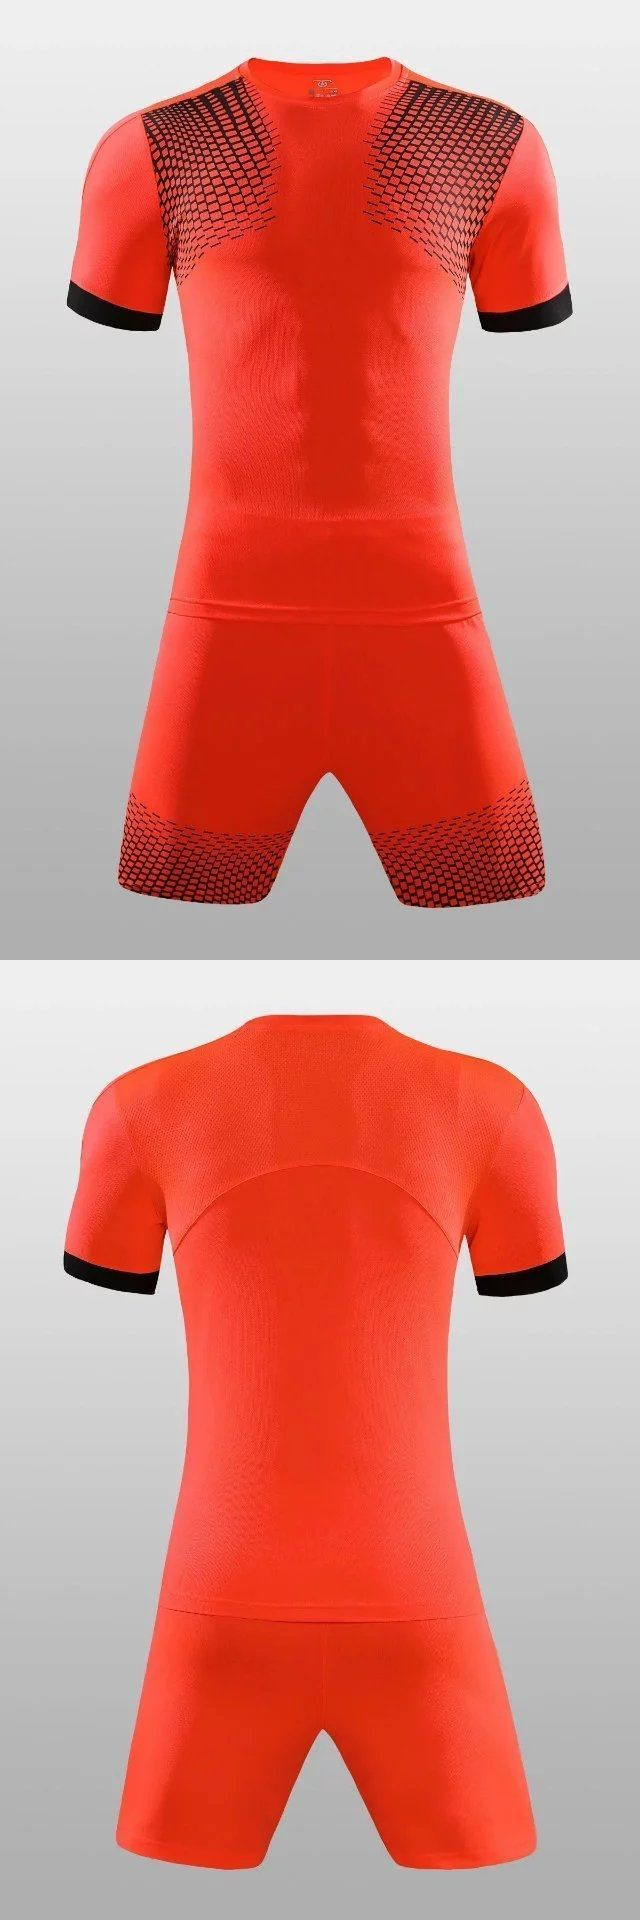 Football Jersey Men's #soccer kits print Long sleeve jersey football sets training Sports suit soccer jerseys orange 17/18